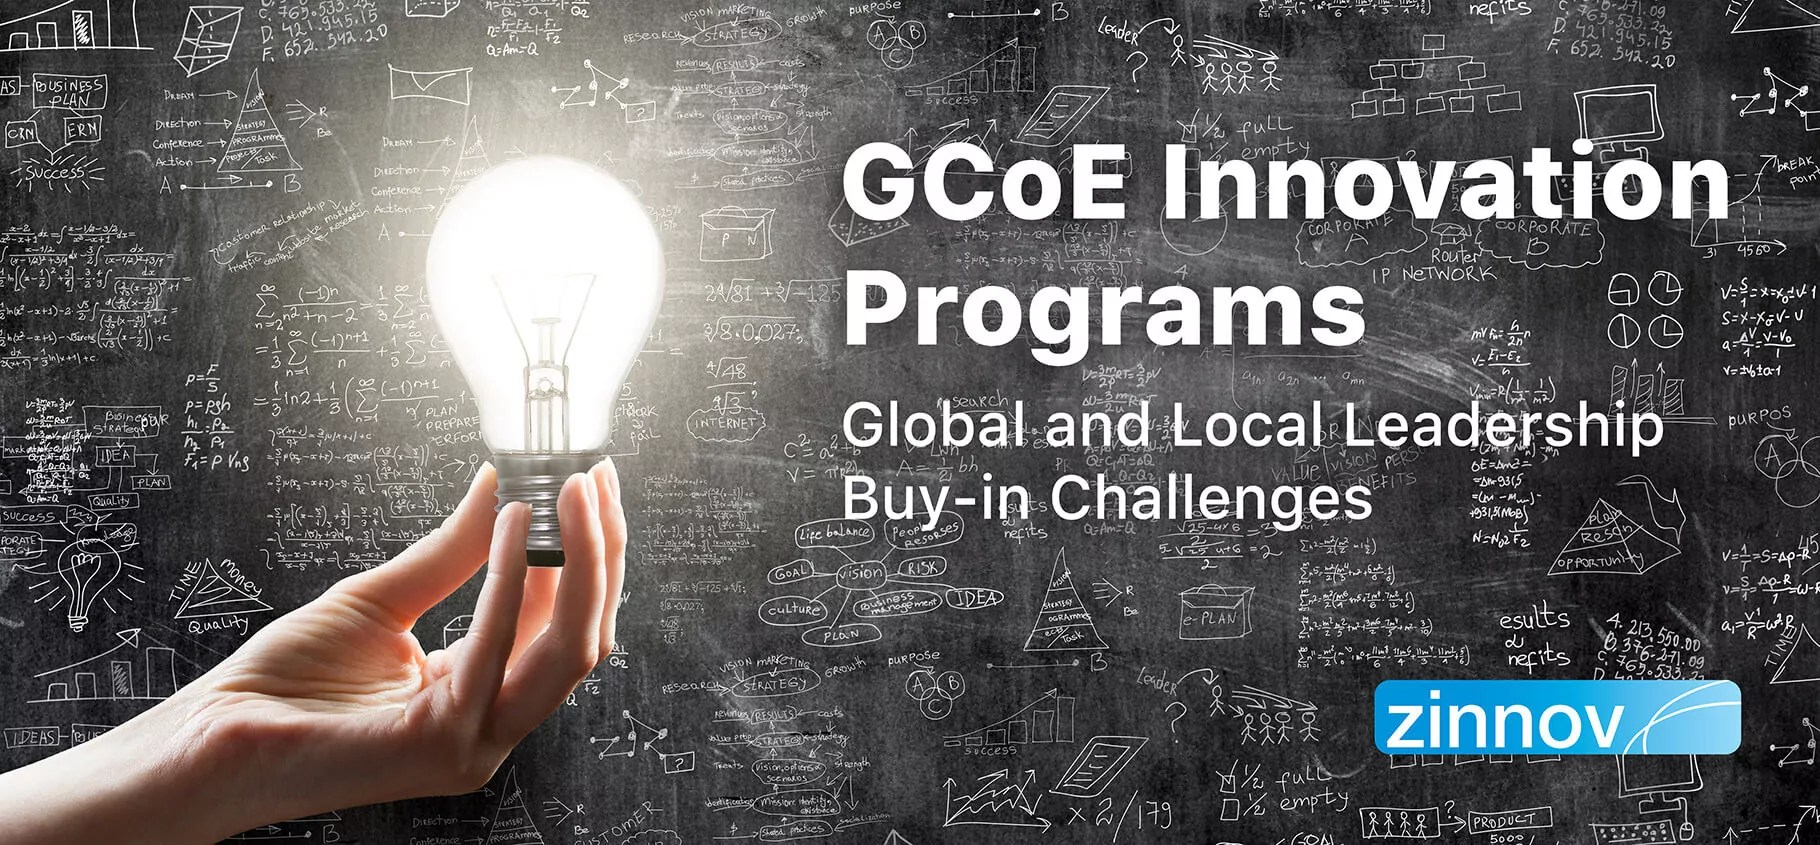 GCoE Innovation Programs